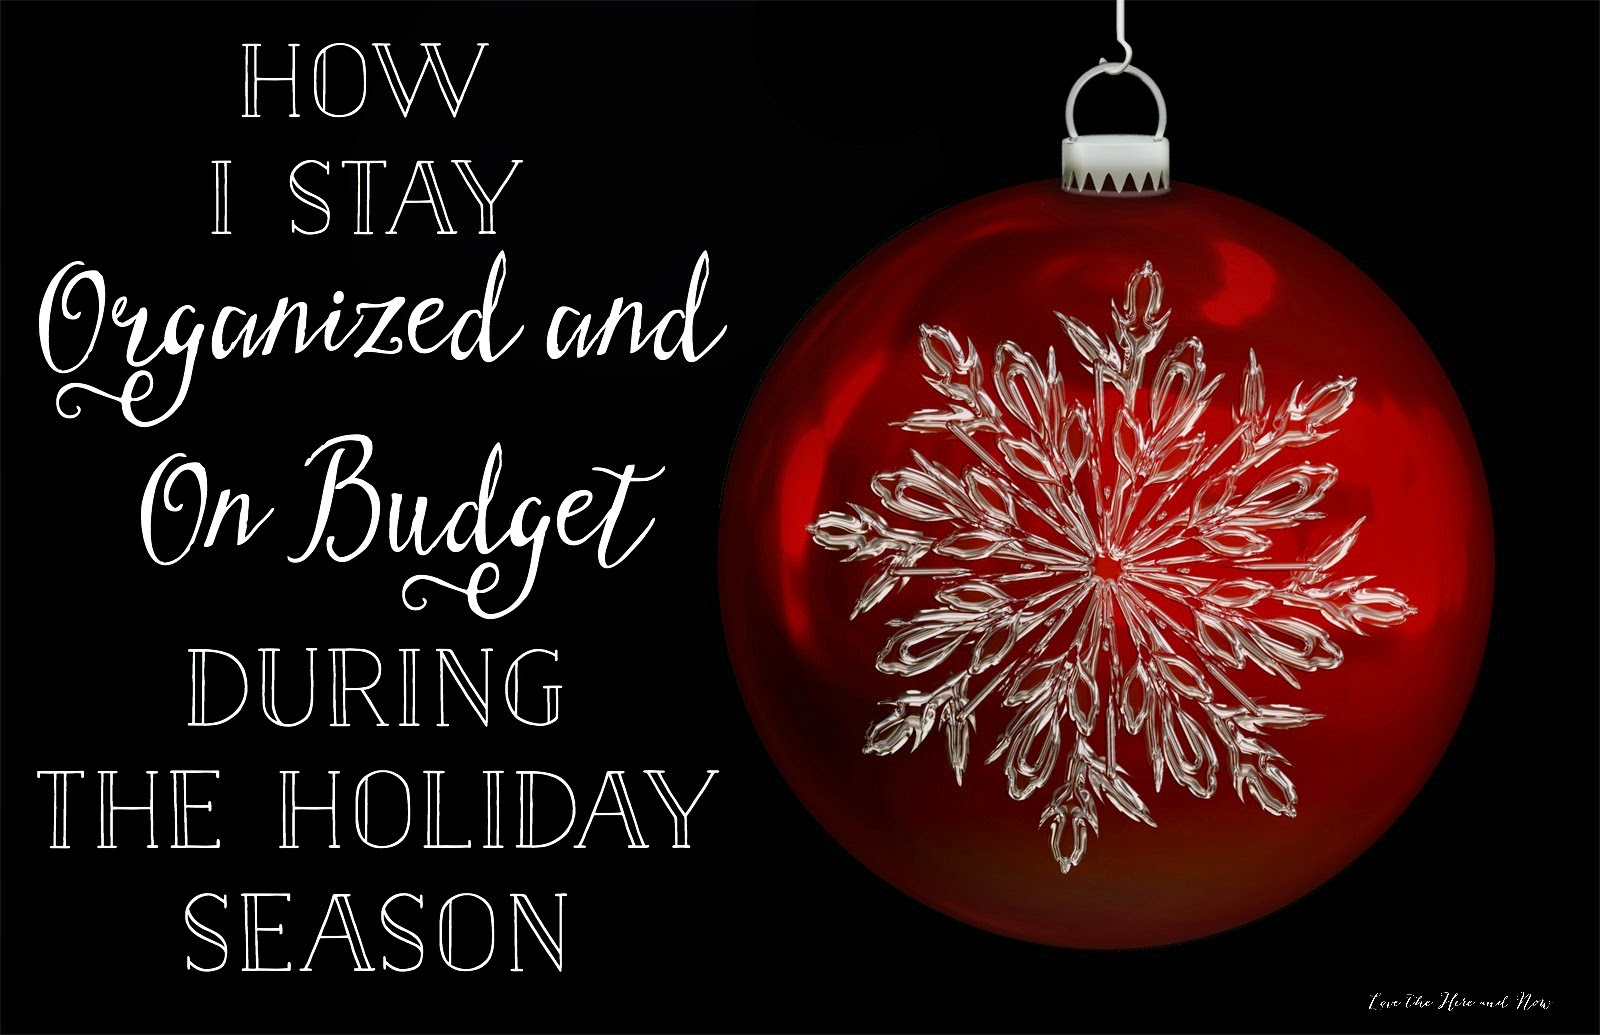 Click here to learn how to stay organized and on budget during the holidays